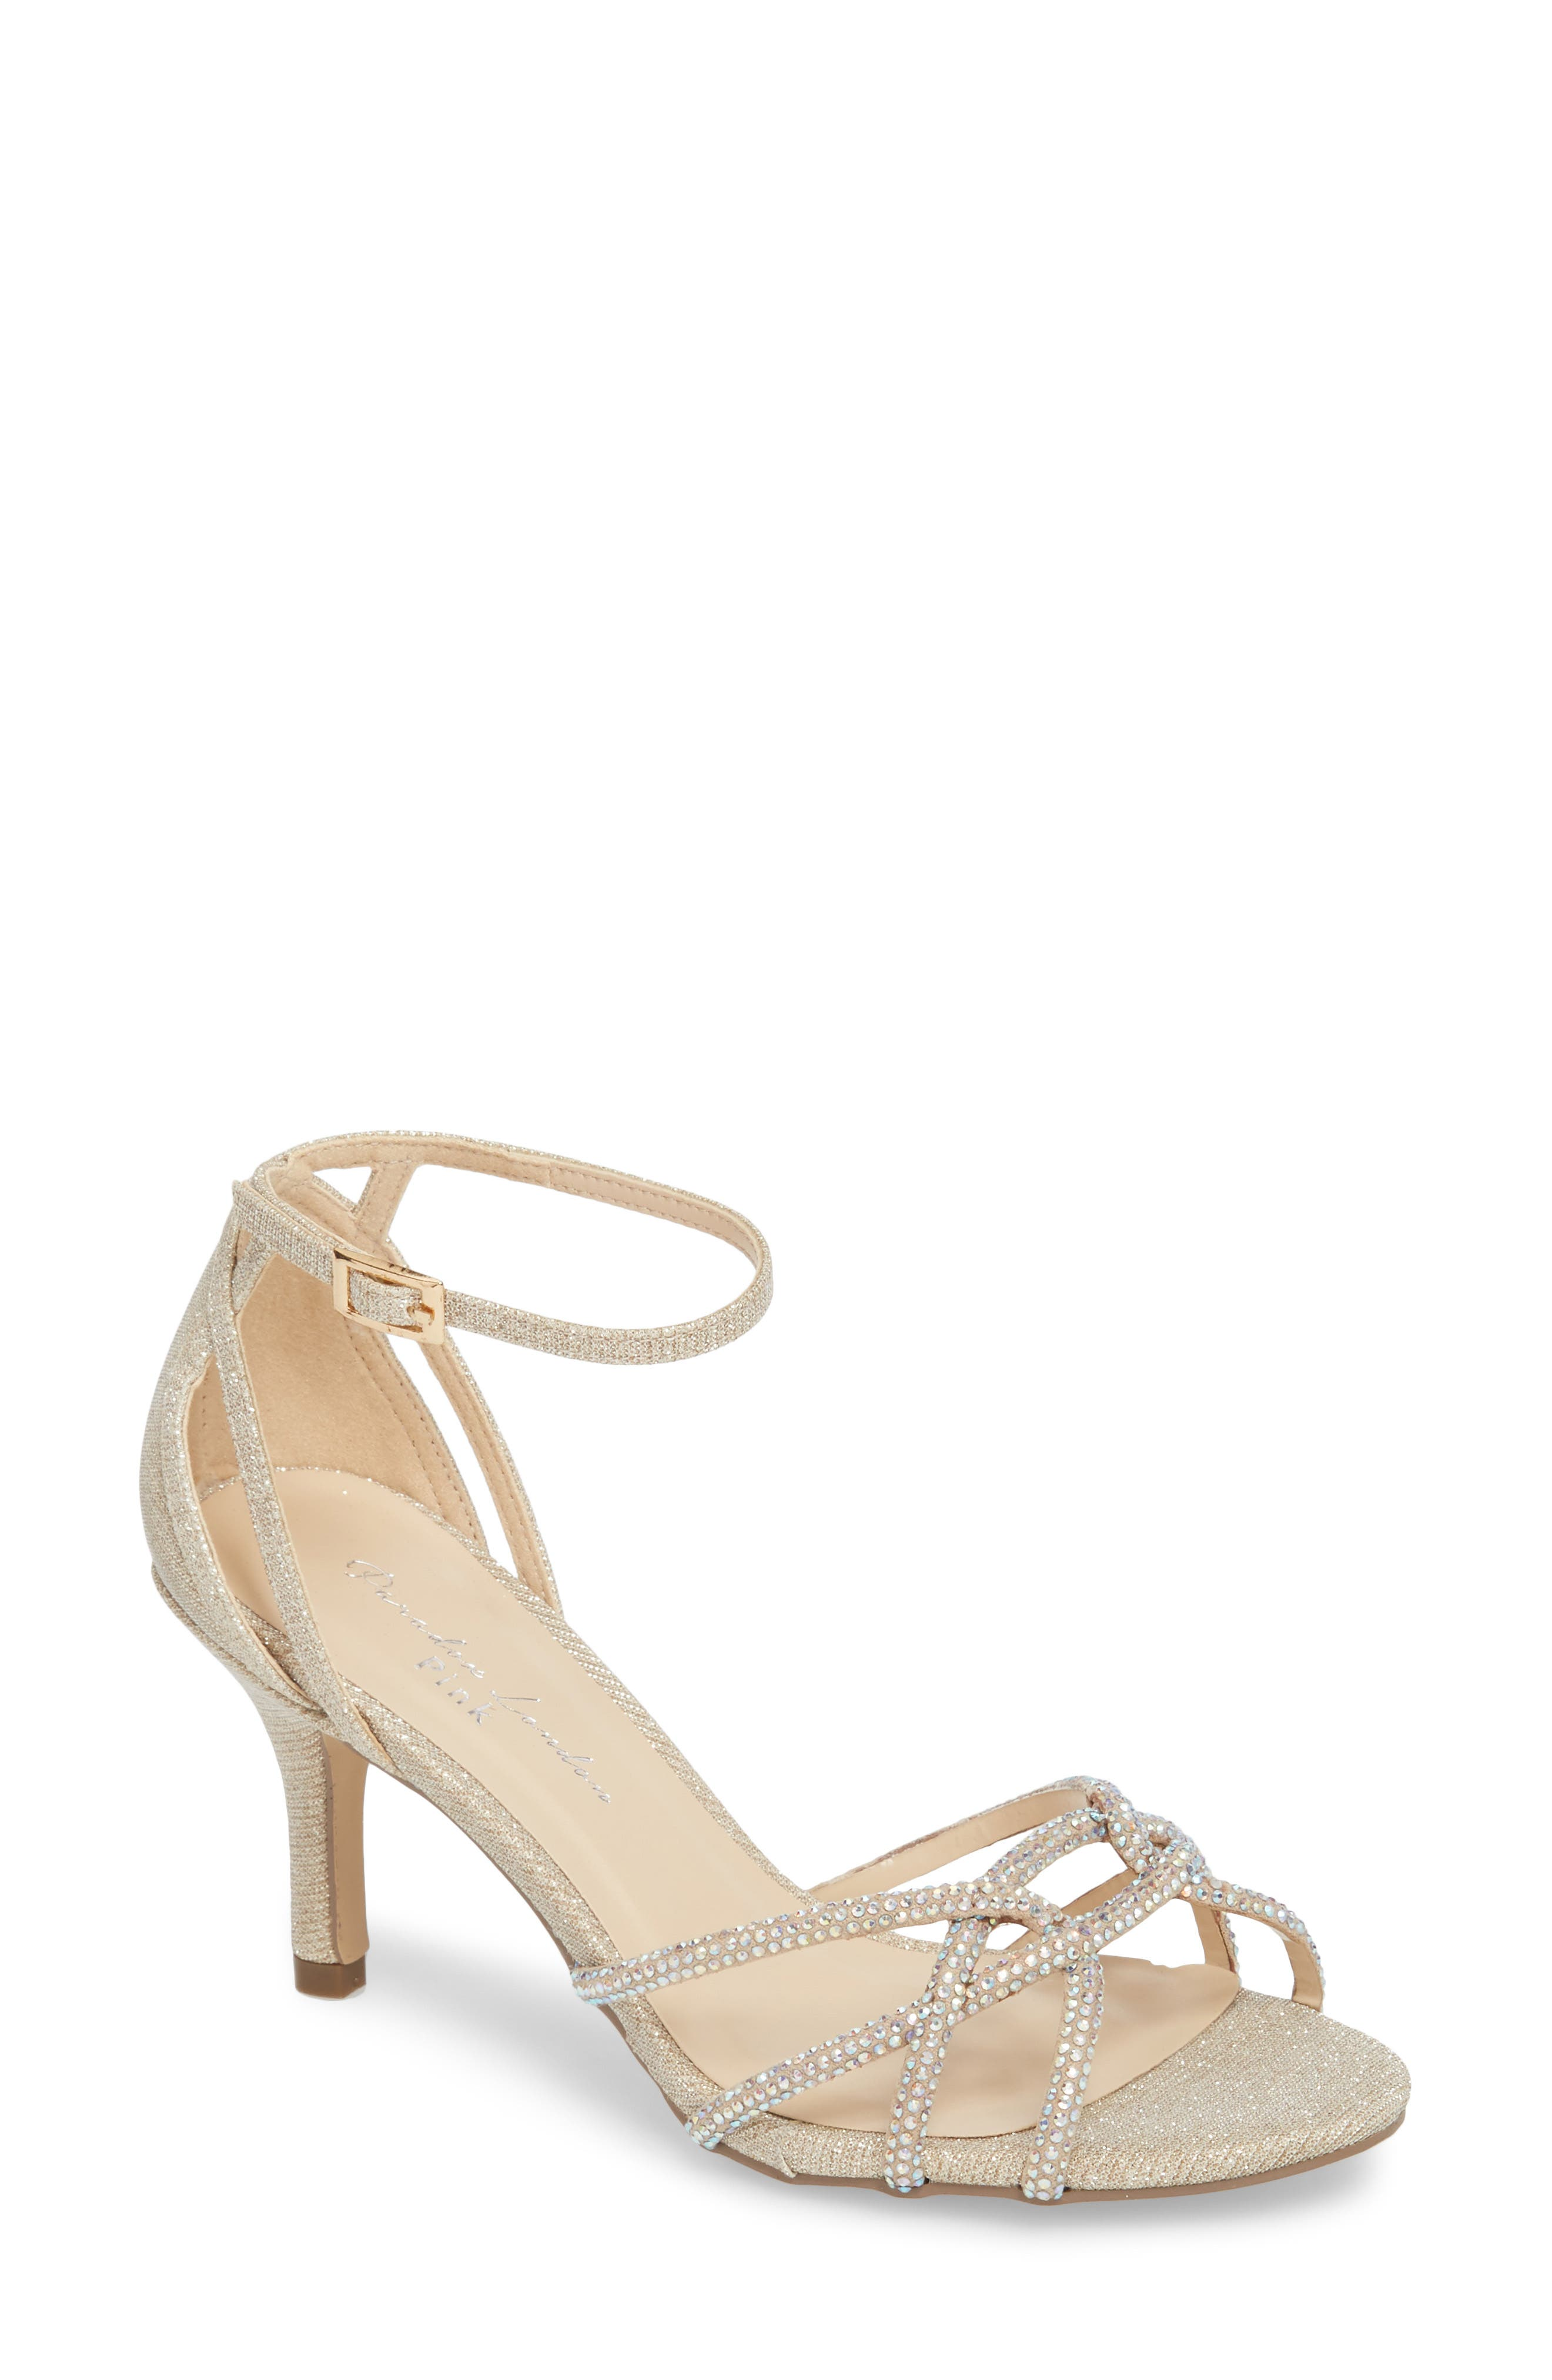 Majesty Sandal,                         Main,                         color, Champagne Fabric